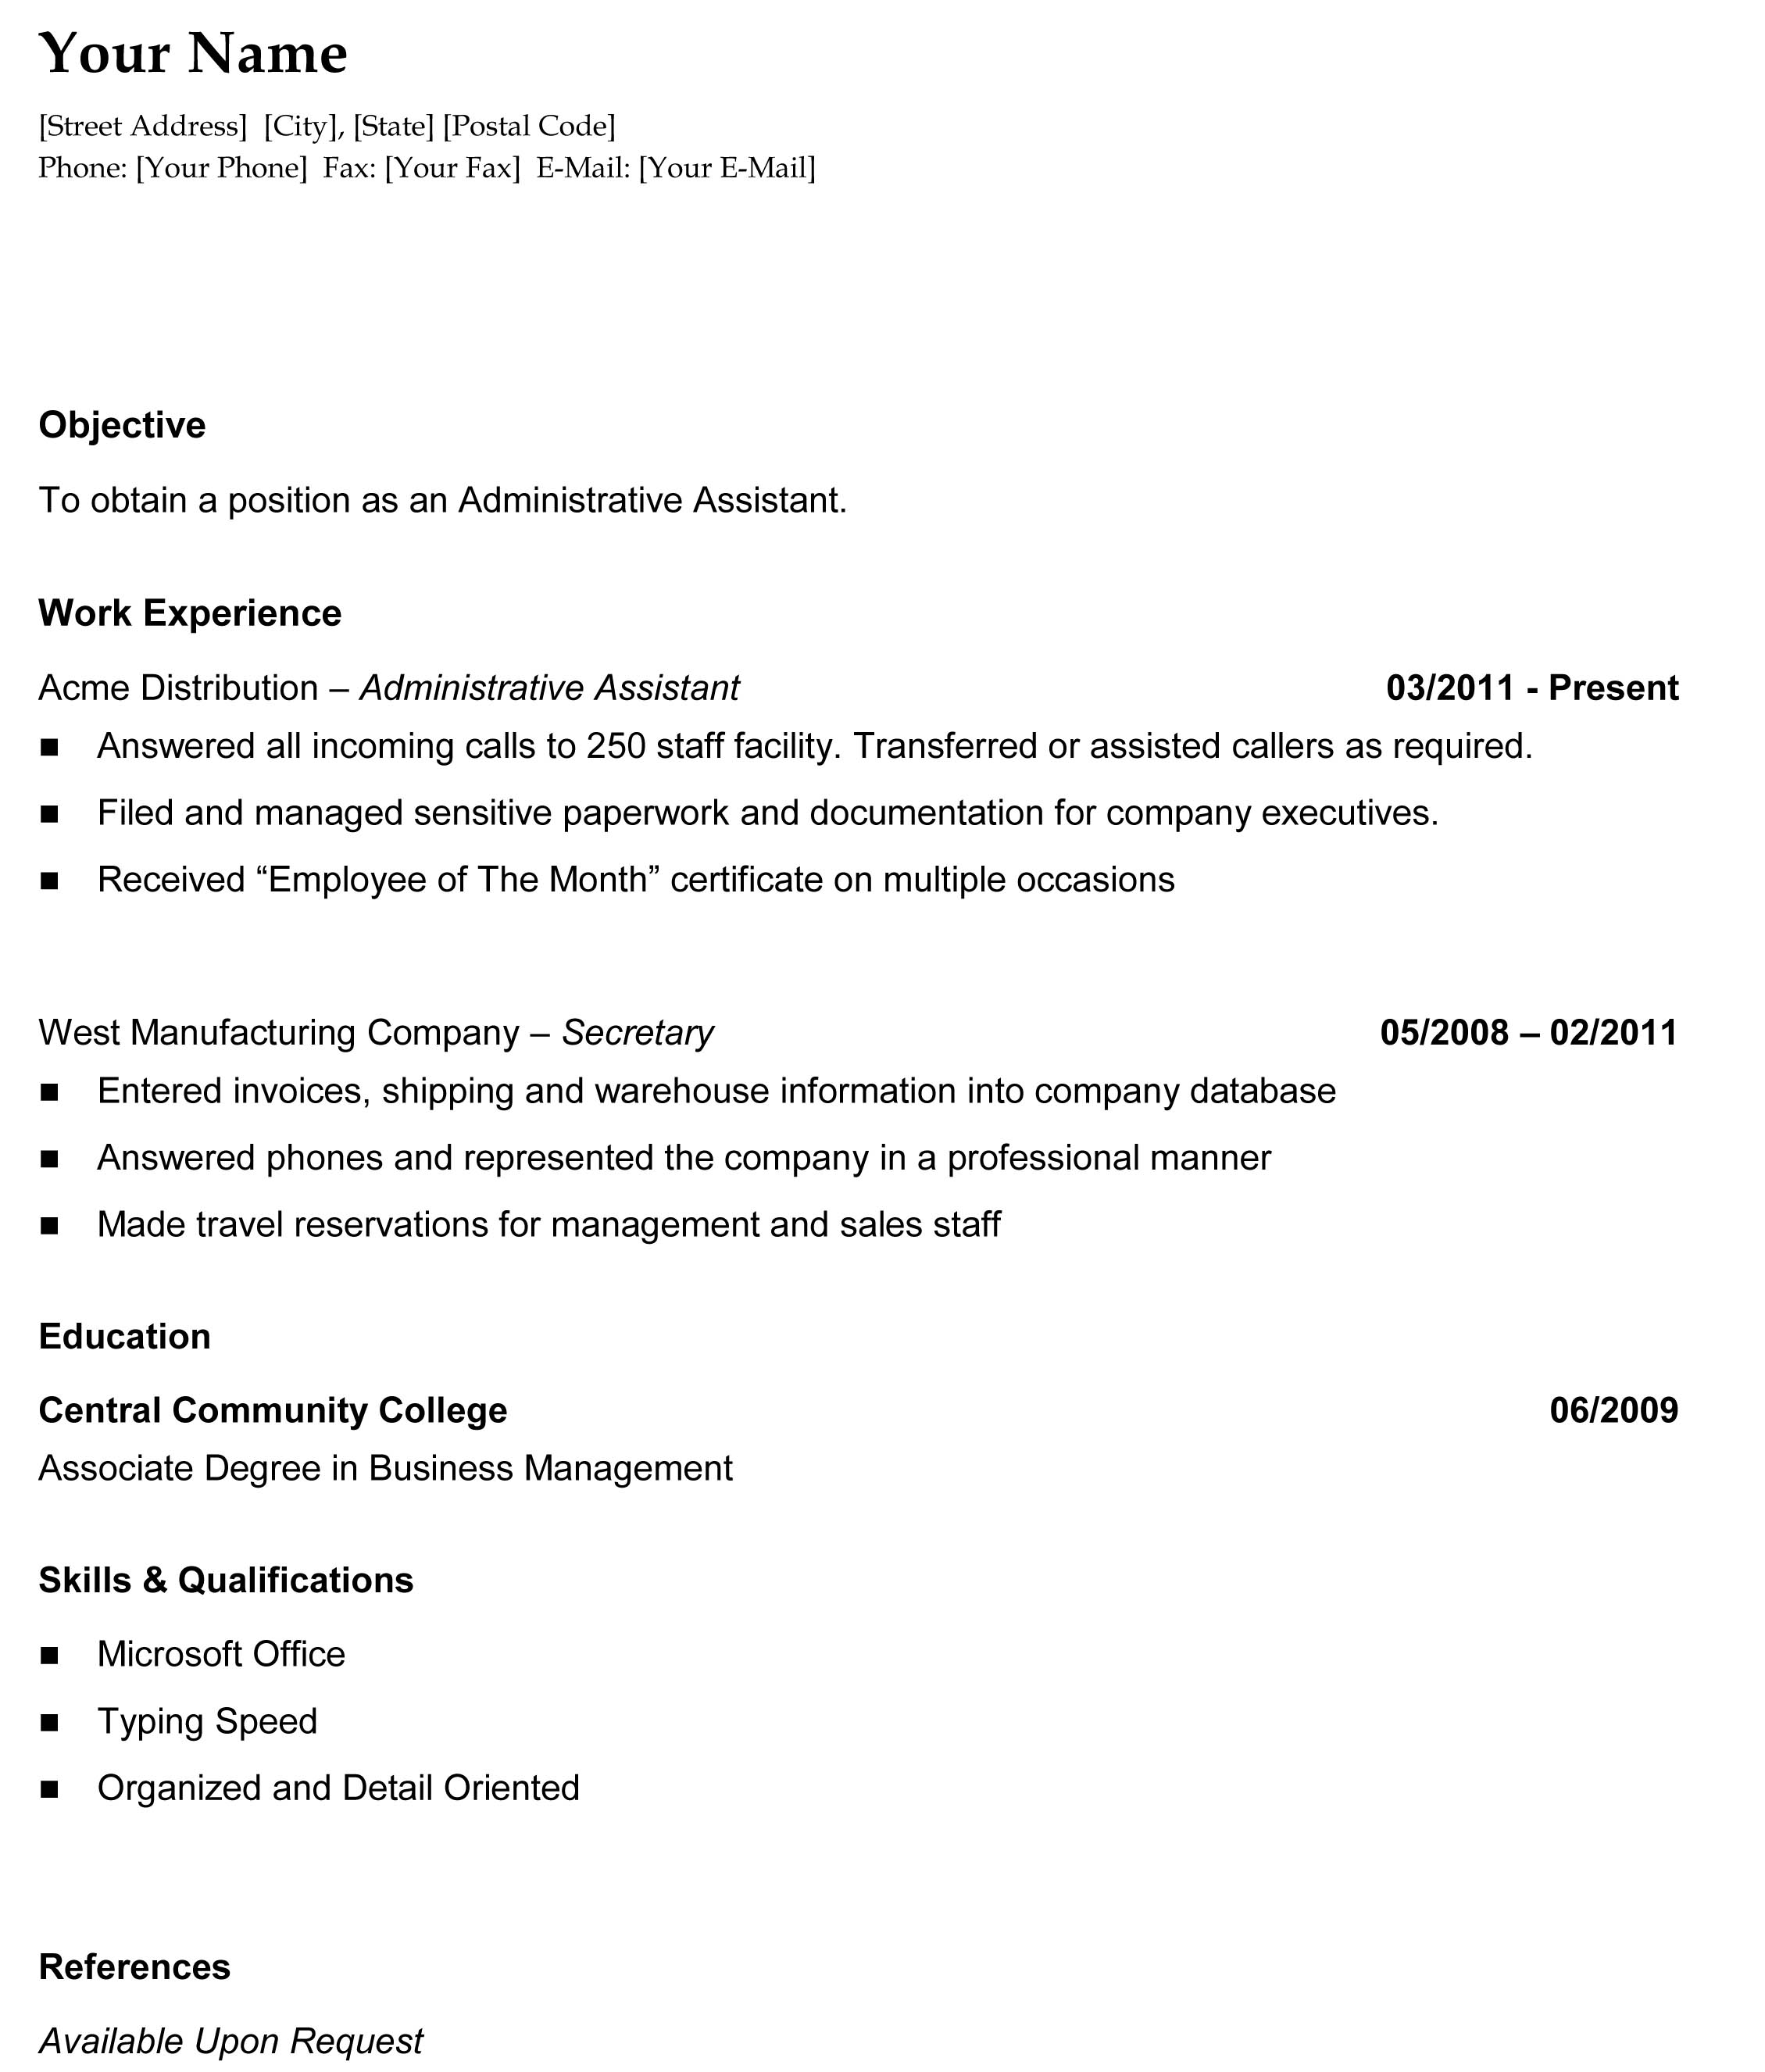 Resumetemplate General Chronological Resume The Resume Template Site